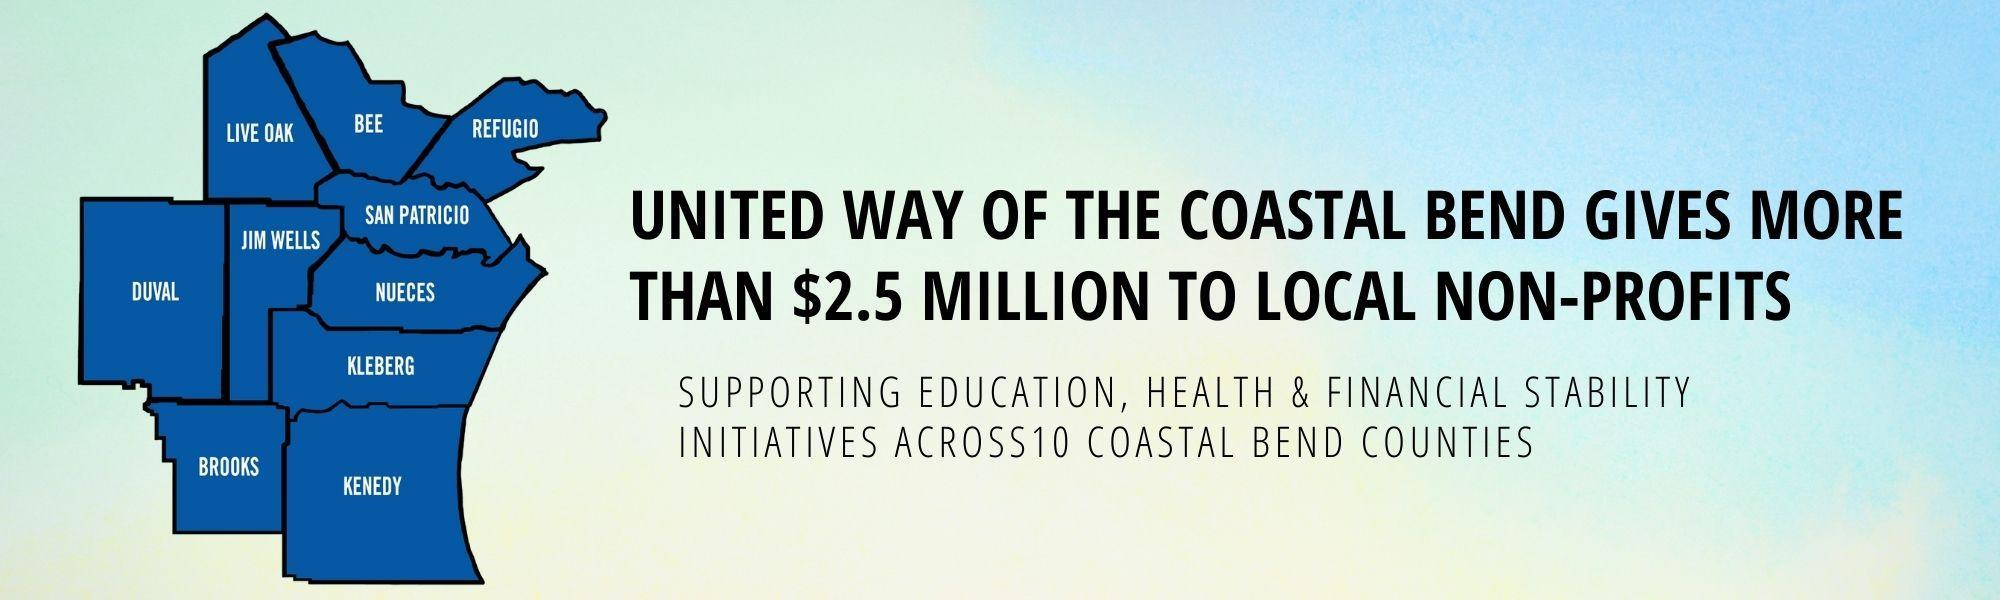 United Way of the Coastal Bend gives more than $2.5 million to local non-profits